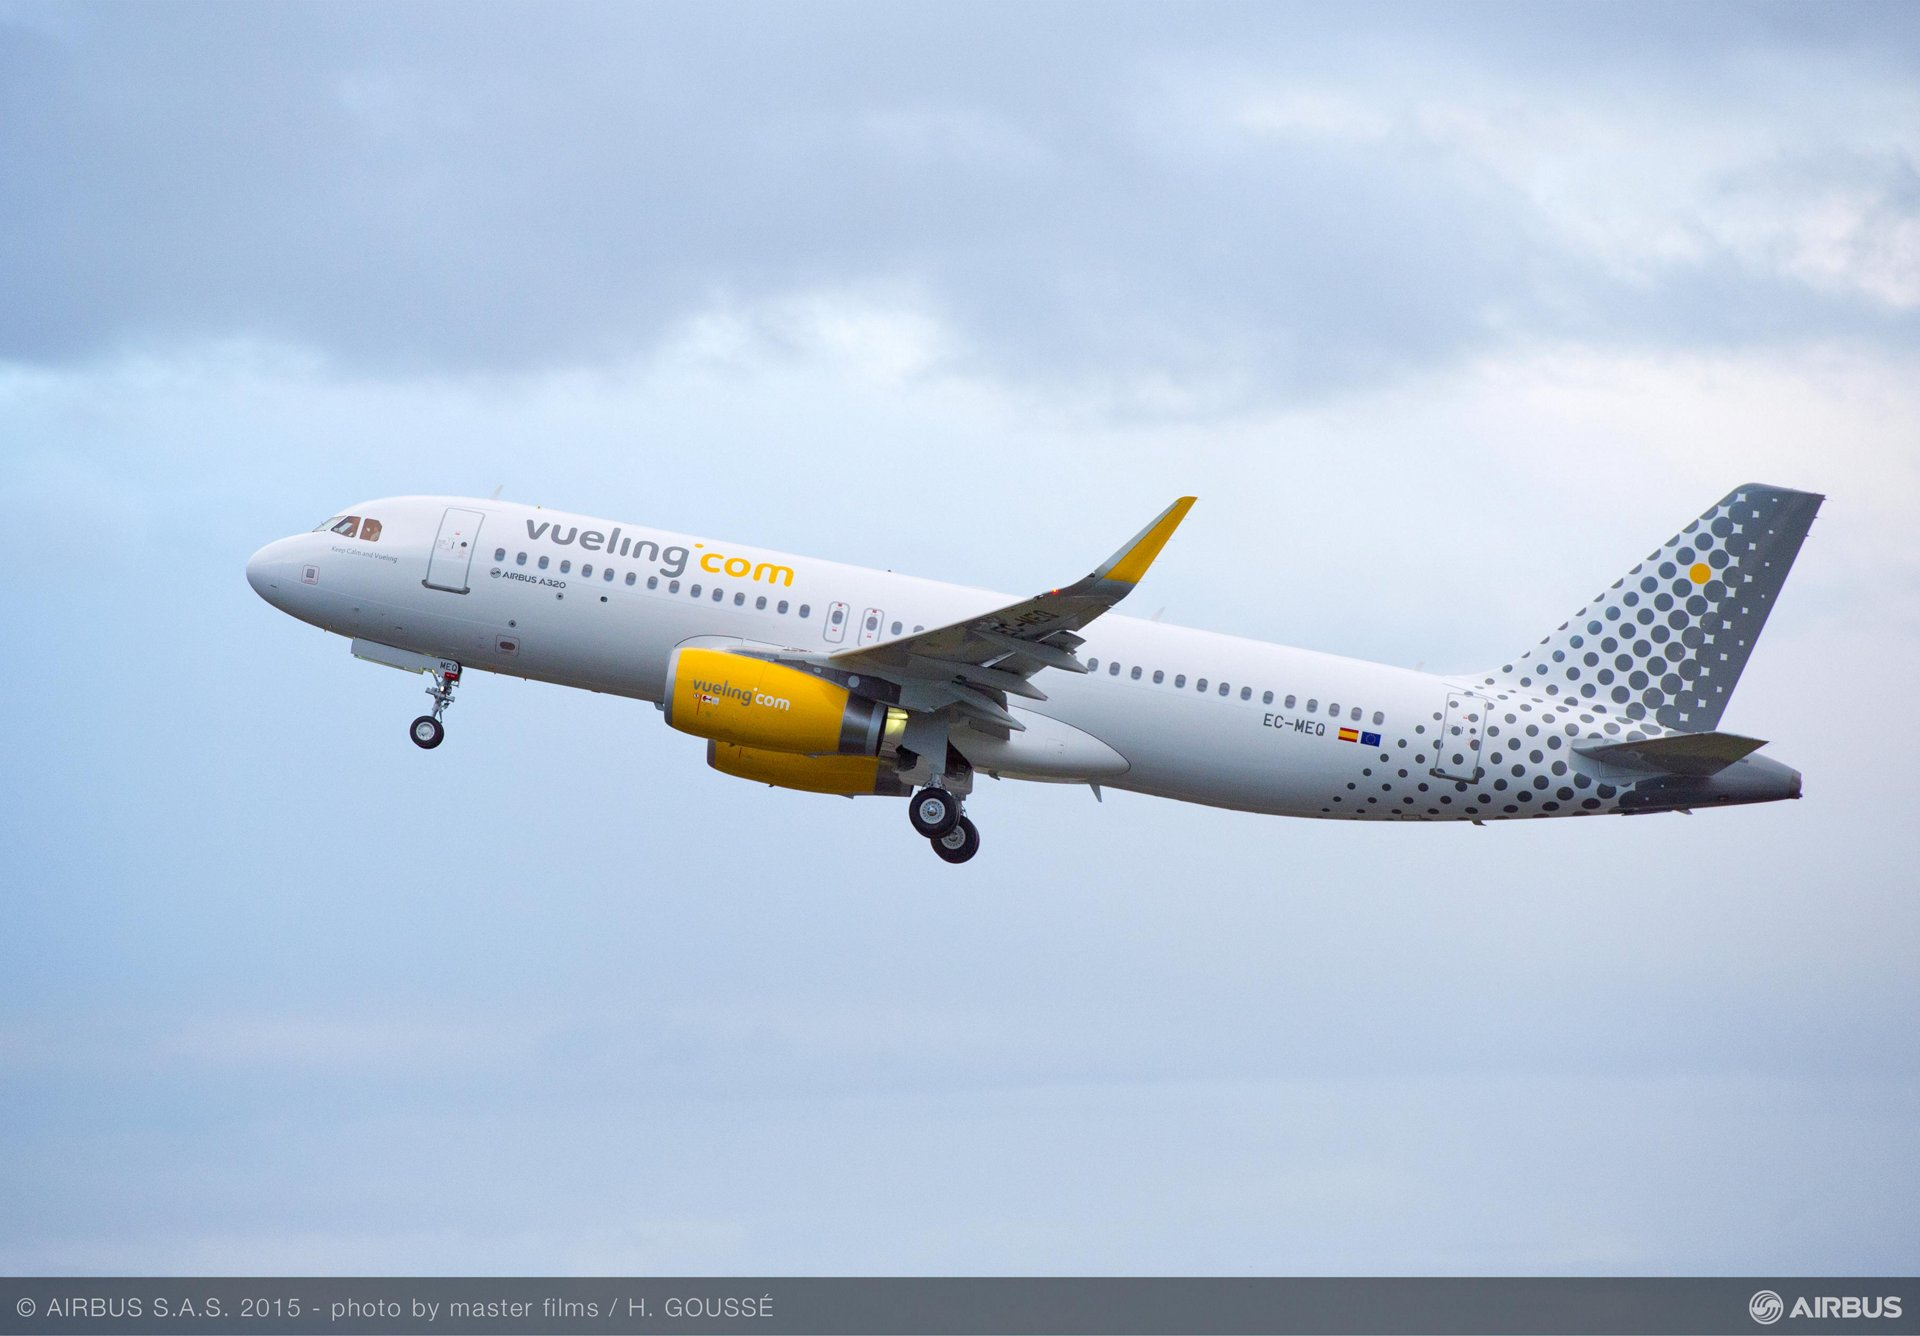 Vueling A320_takeoff